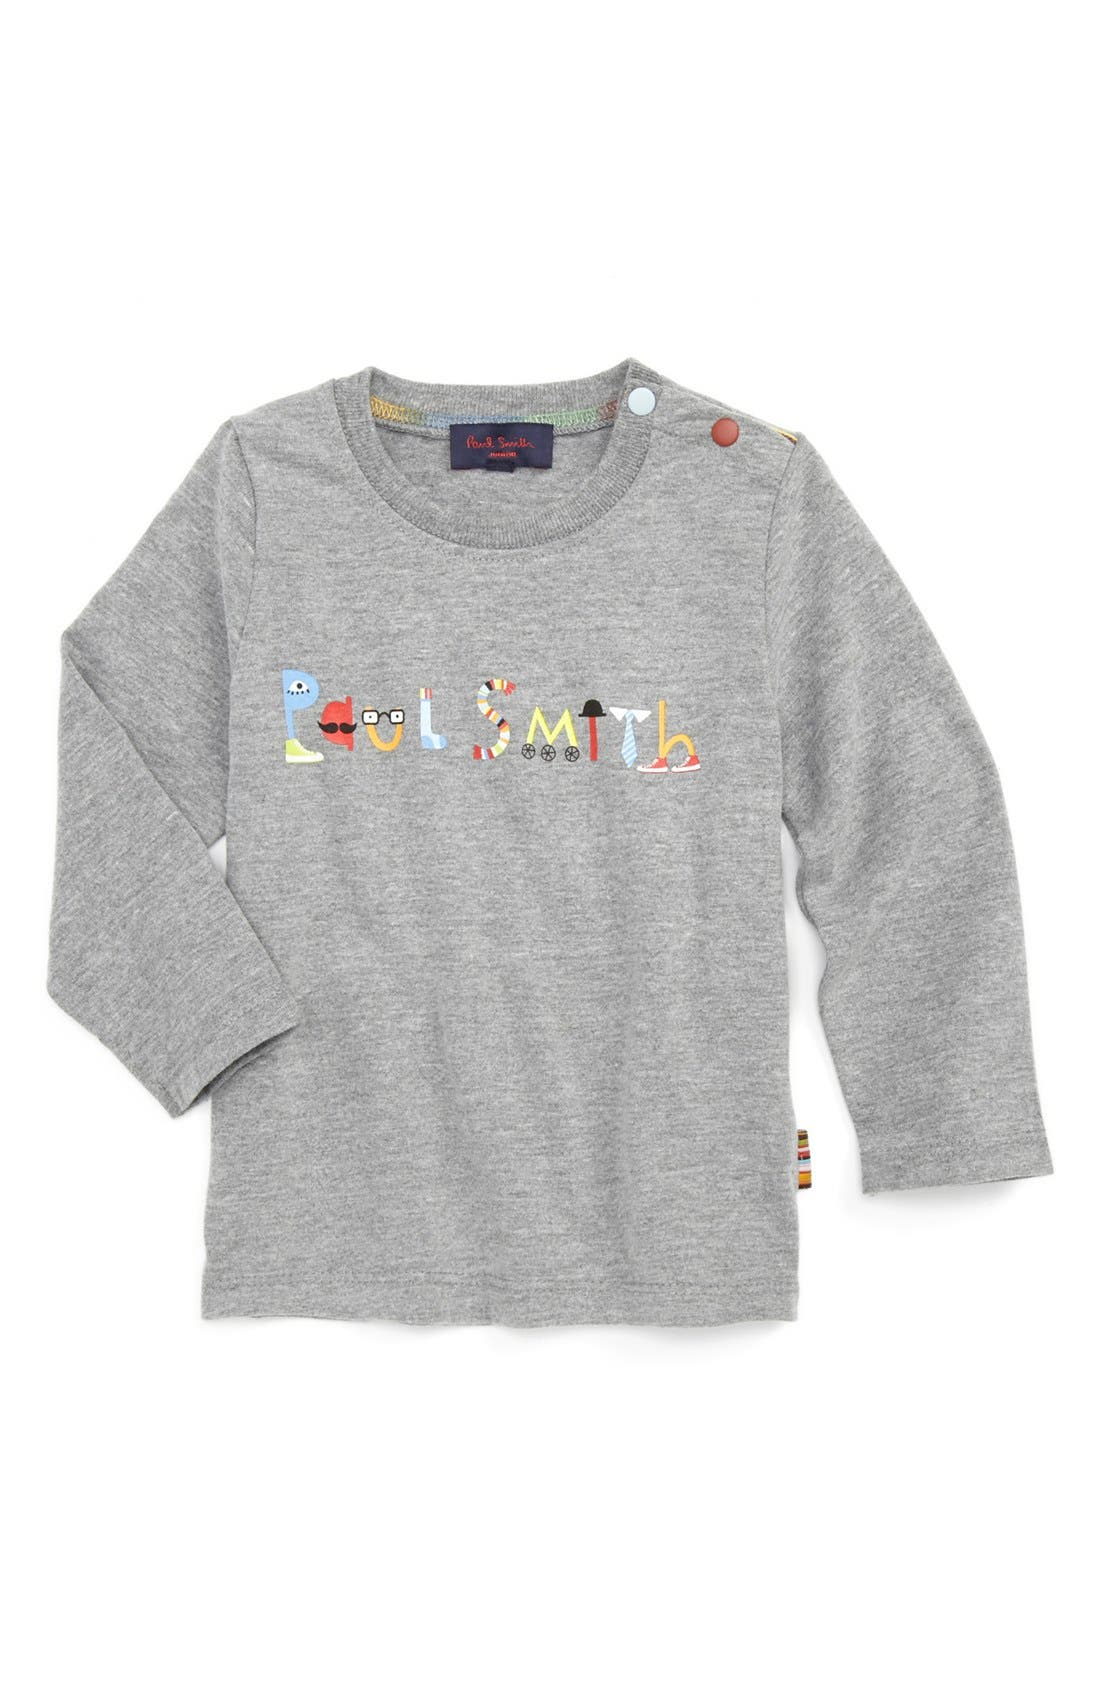 Alternate Image 1 Selected - Paul Smith Junior 'Elio' T-Shirt (Baby)